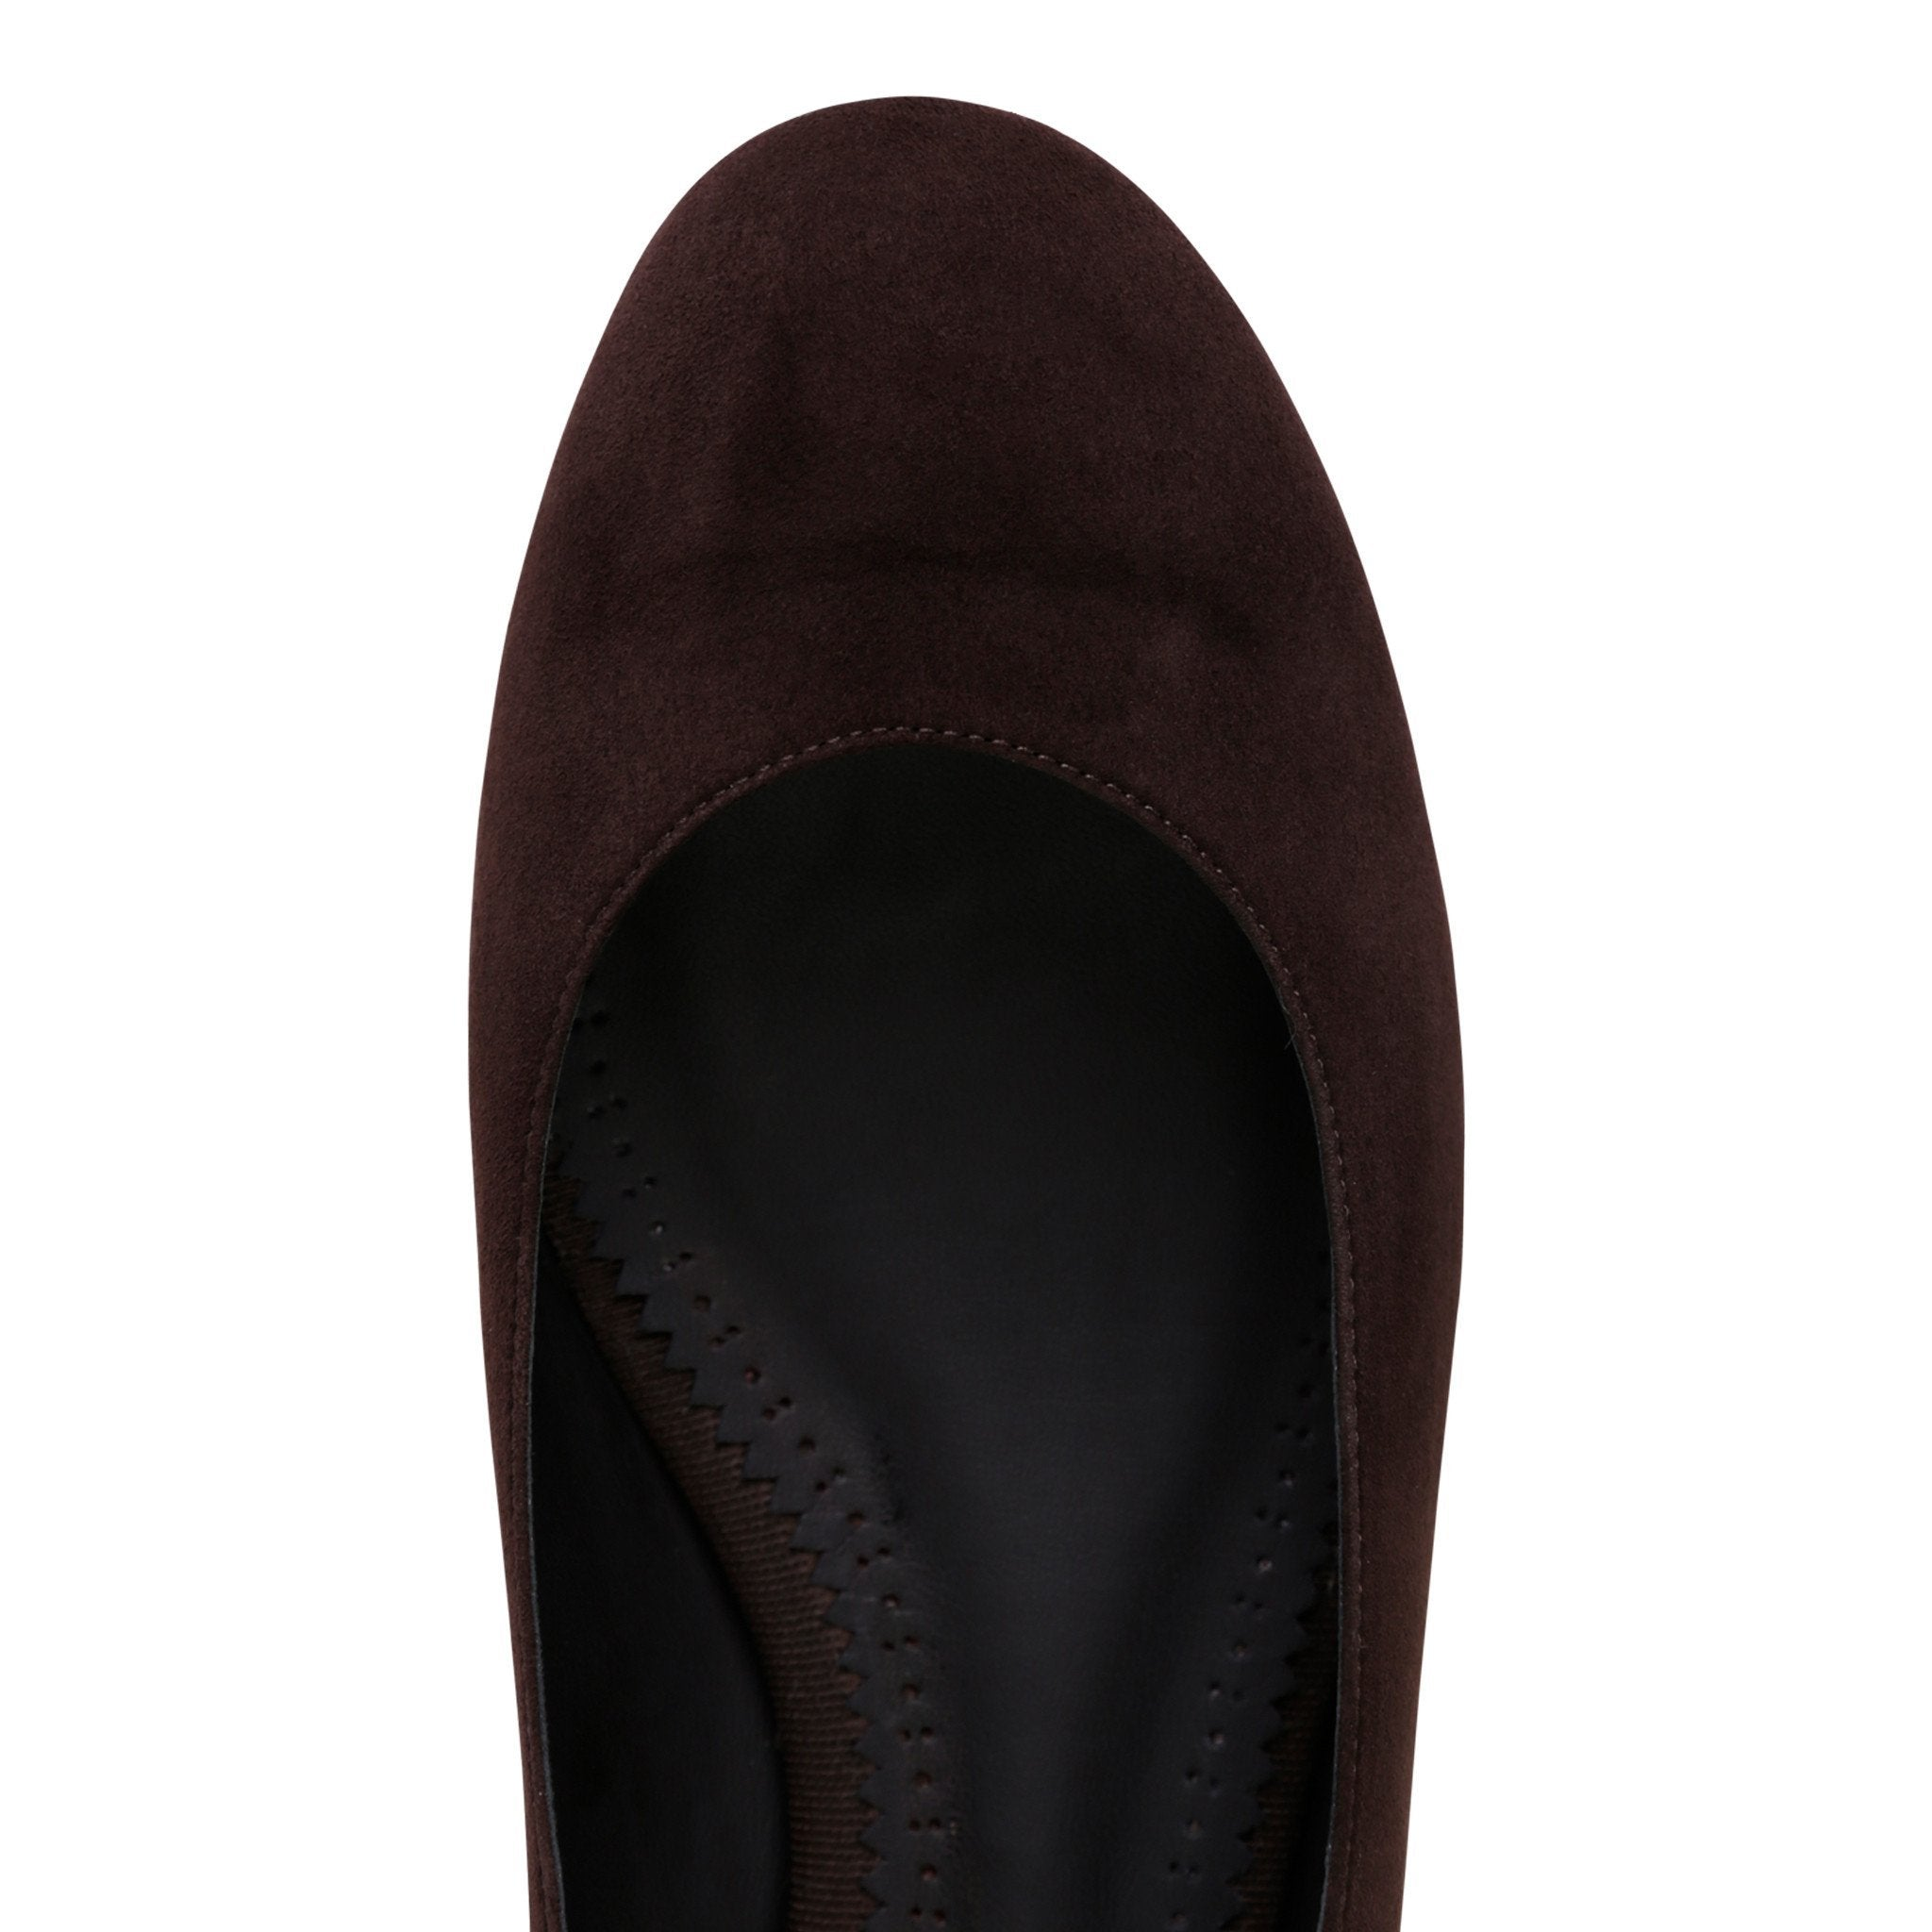 ROMA - Velukid Espresso, VIAJIYU - Women's Hand Made Sustainable Luxury Shoes. Made in Italy. Made to Order.